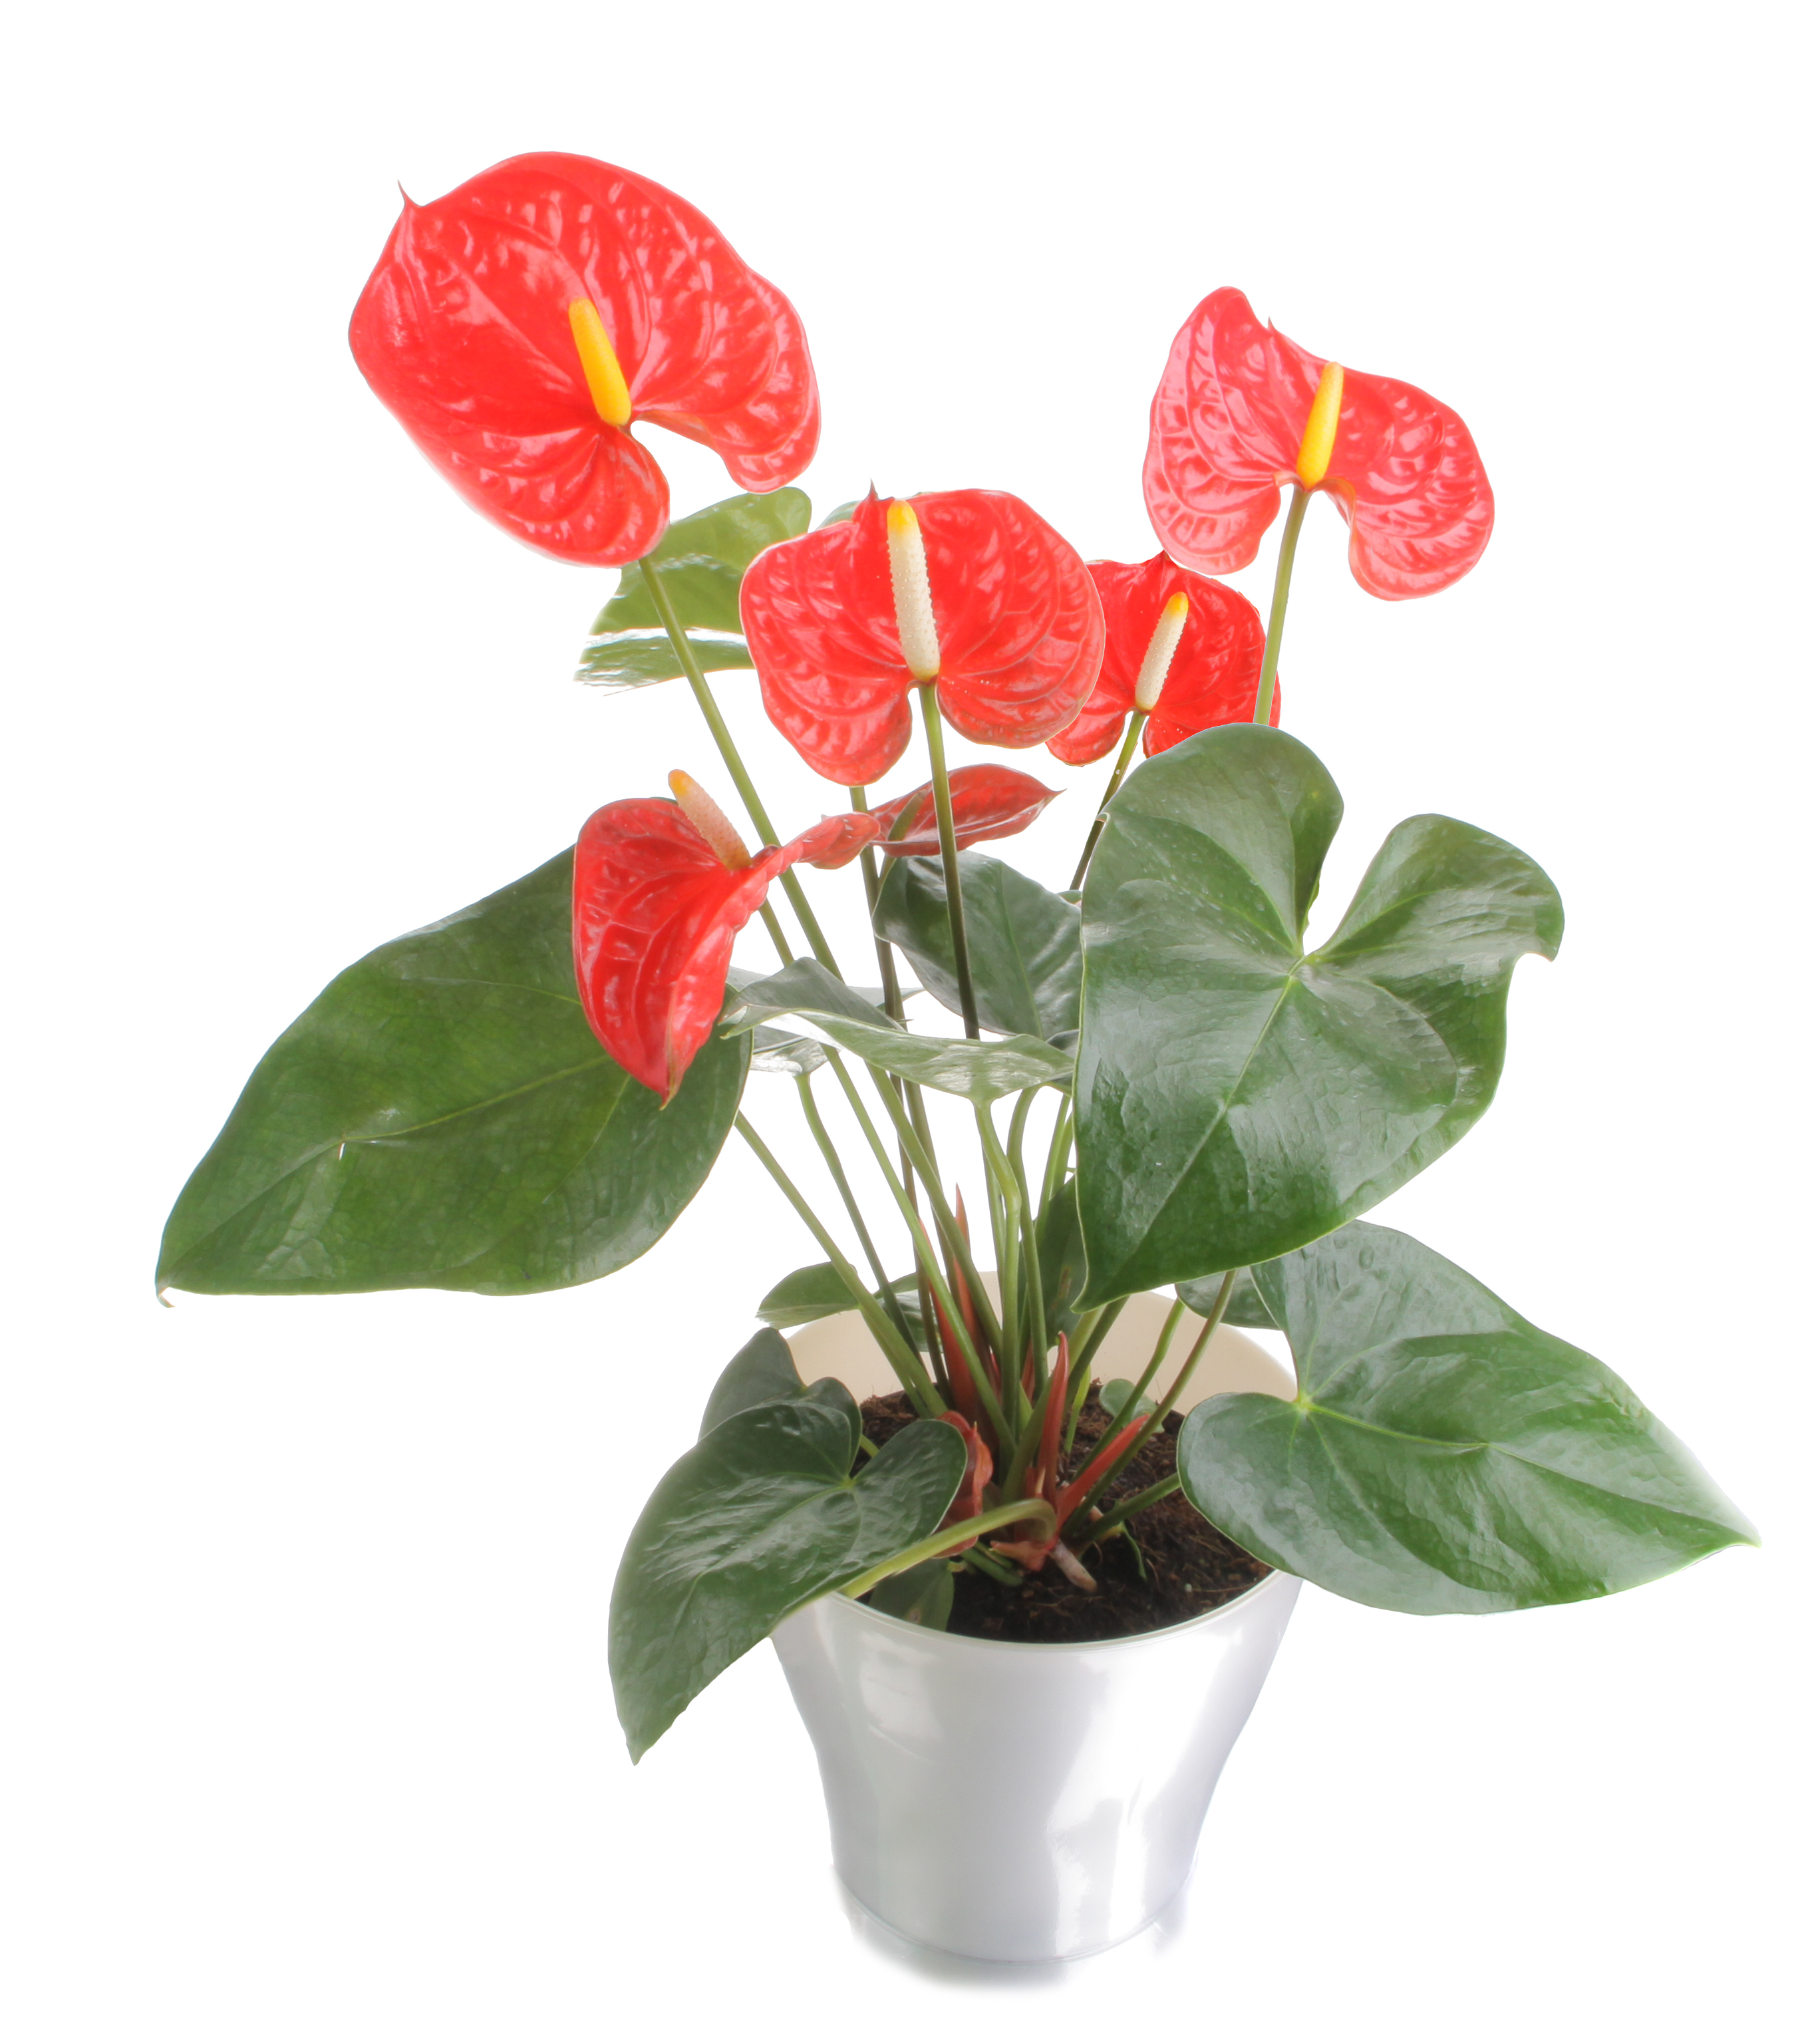 anthuriums bear heart shaped red flowers and leaves complemented with standing at attention yellow centers